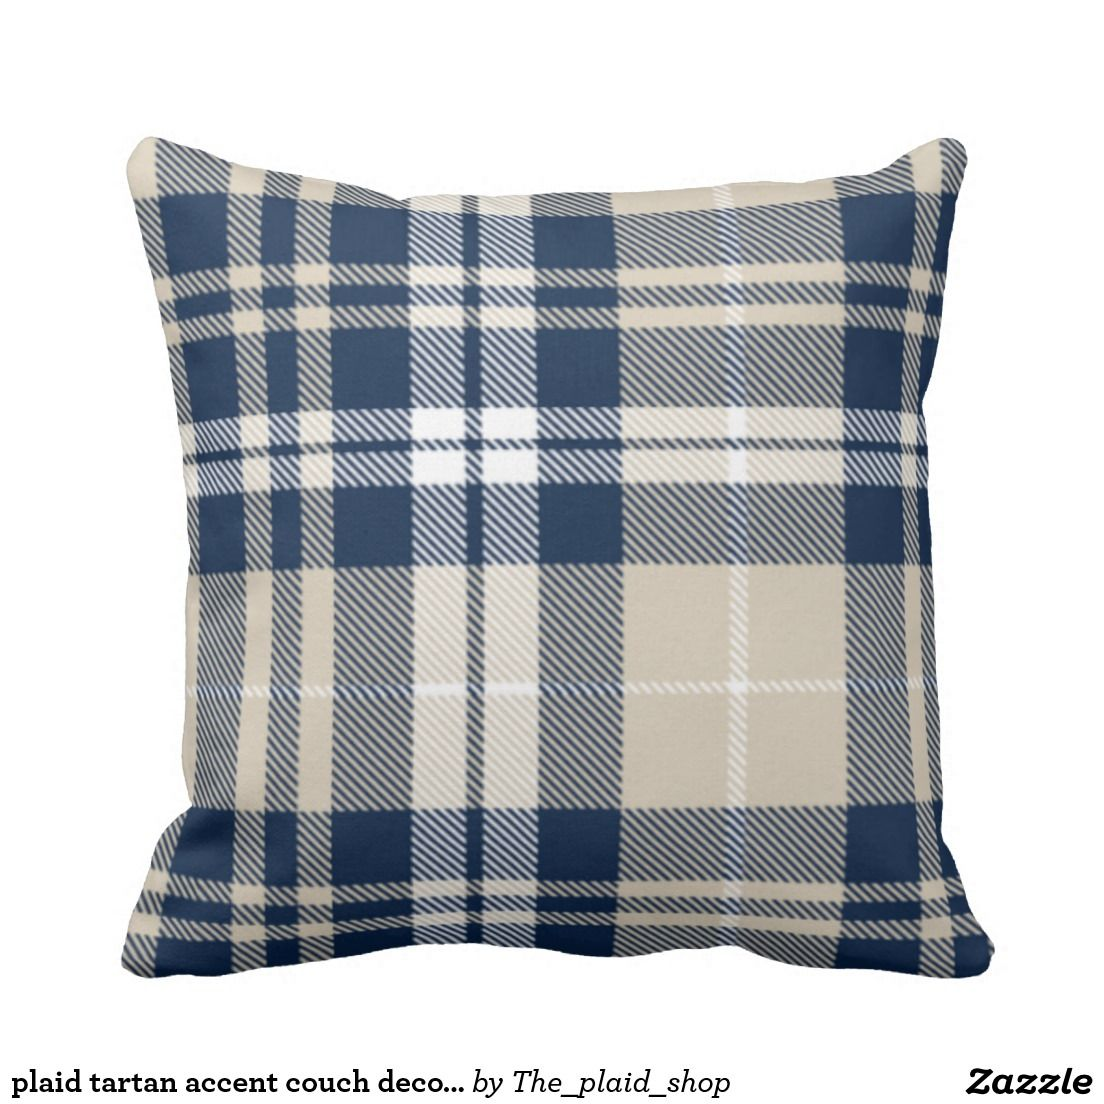 100183b7d92b4e9b61359a09740aab36 - 17 Plaid Accent Pillows Tips You Need To Learn Now